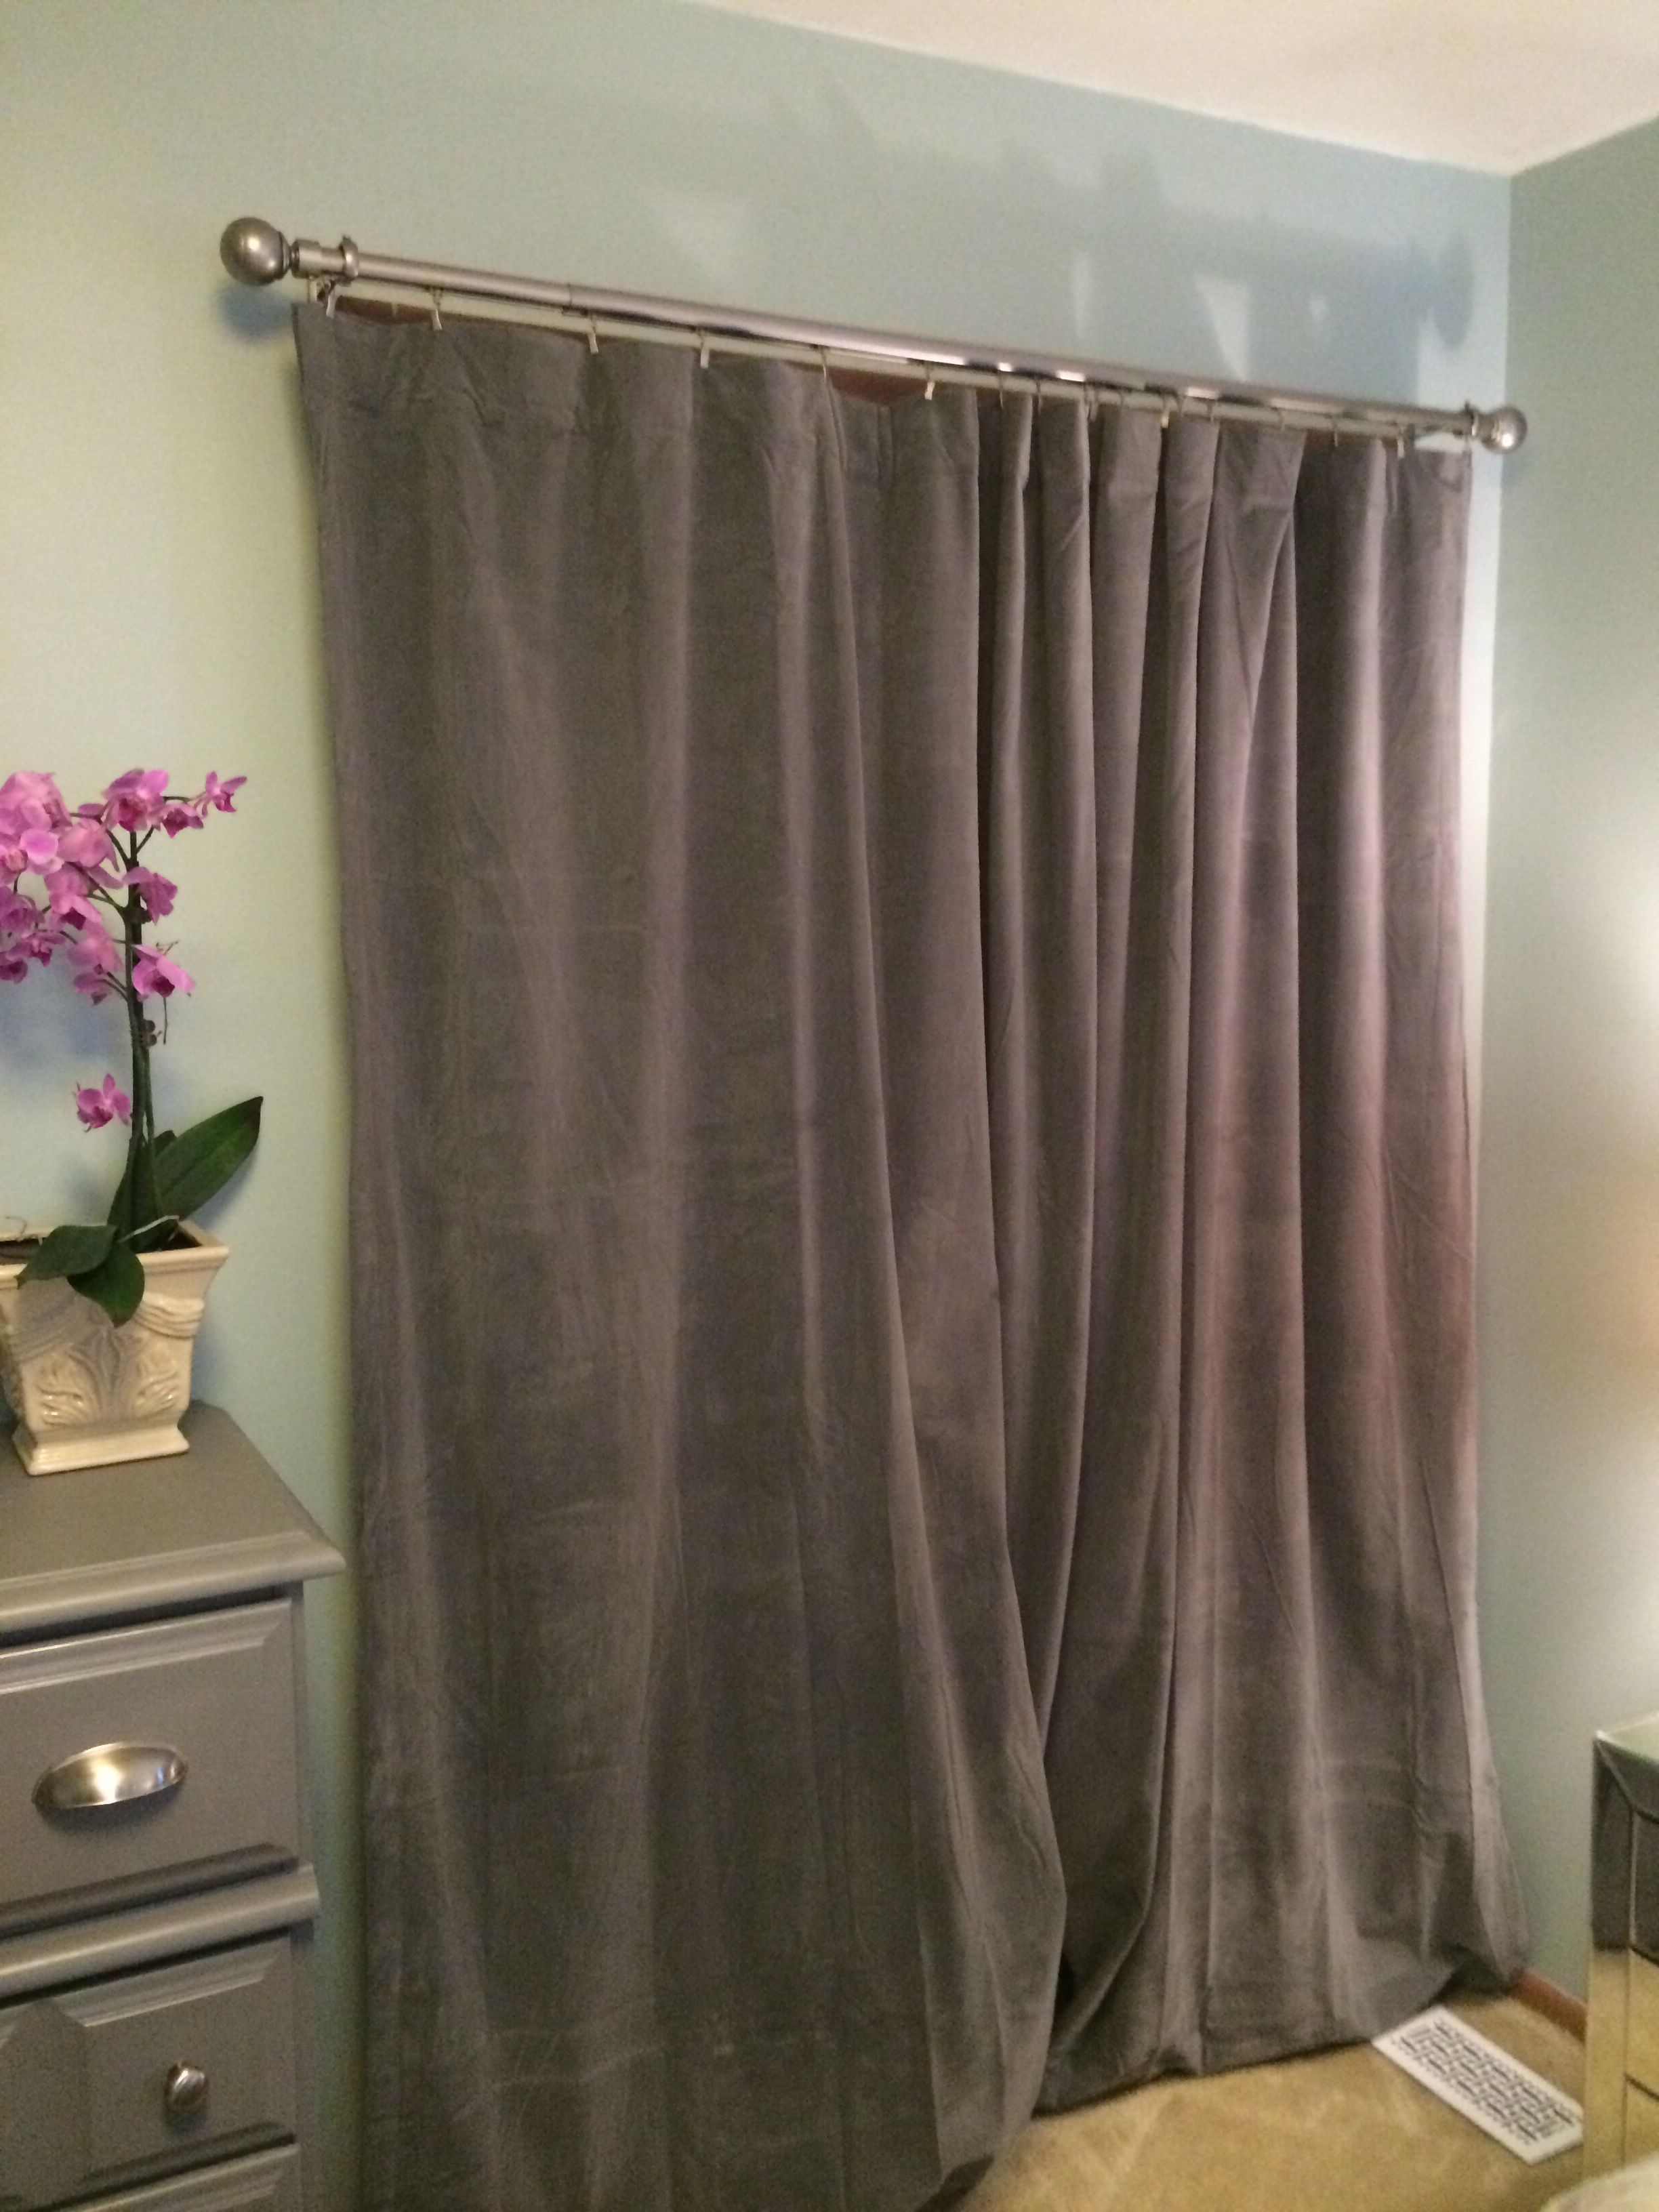 No More Dated Bi Fold Closet Doors Chic Grey Velvet Curtains Instead Installed On A Sleek Rod W Multitude Of Cool Little Clips